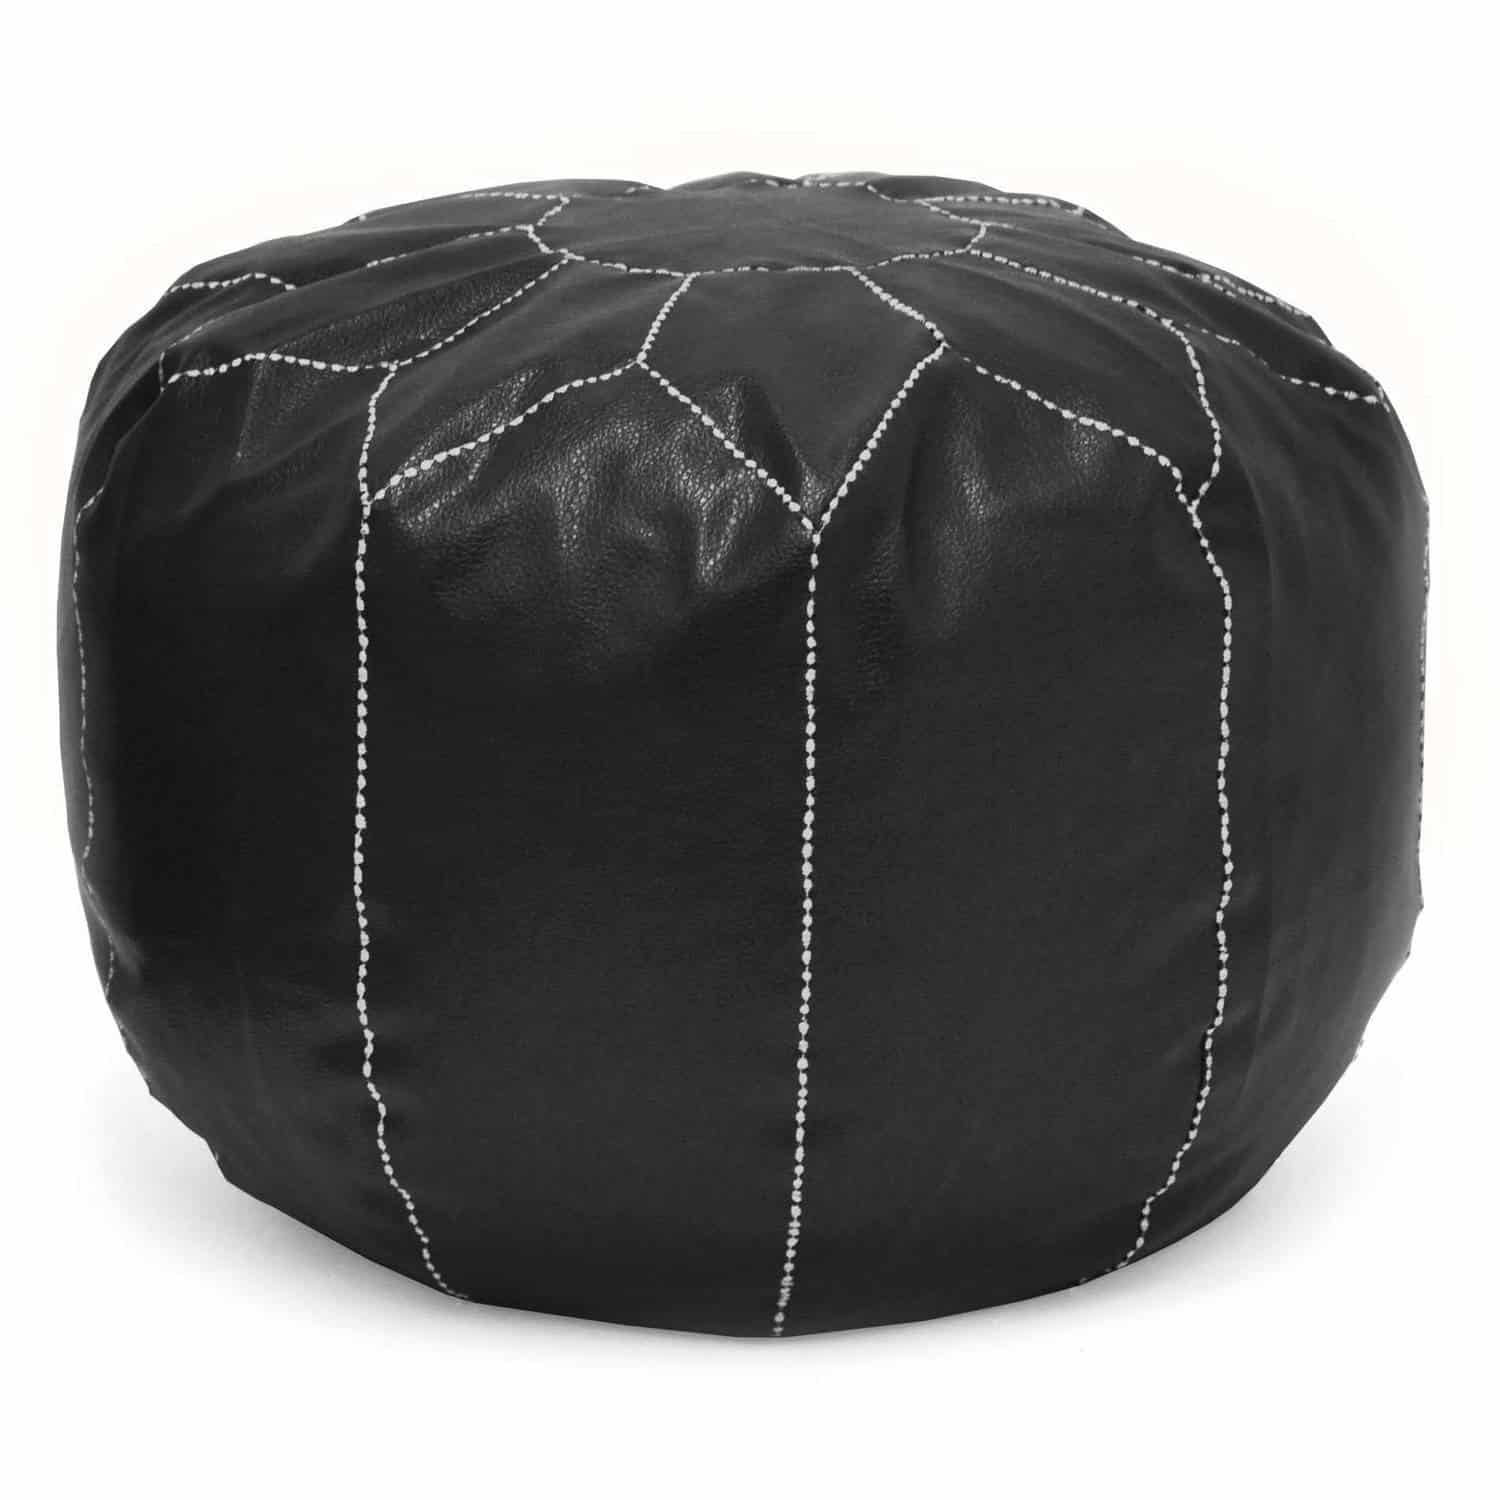 Urban shop faux leather pouf from walmart